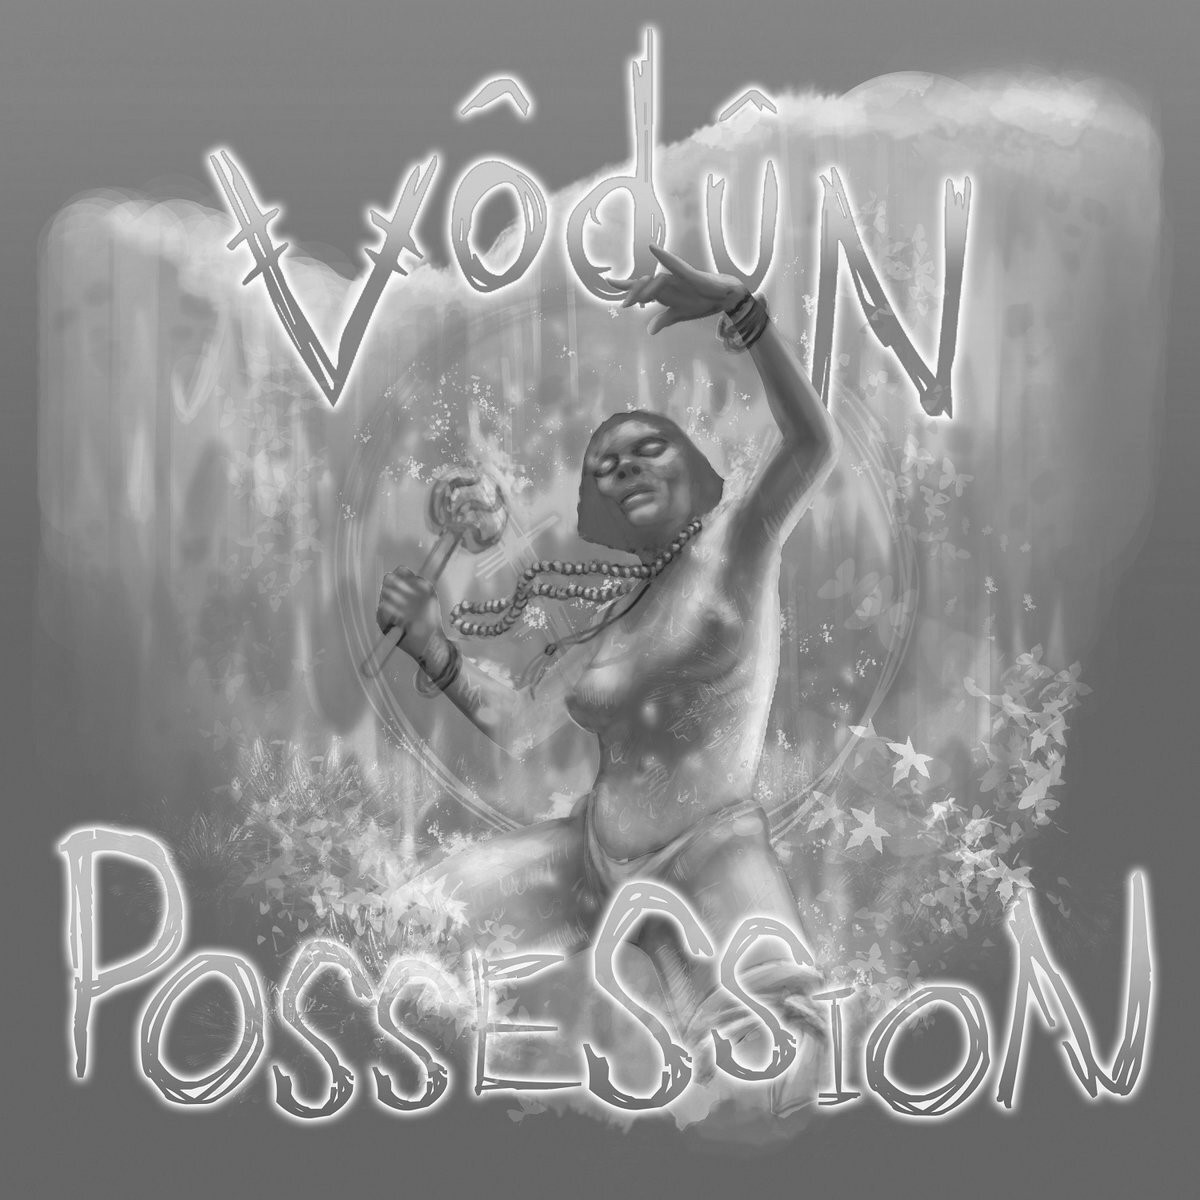 Greyscale. The album cover for Vodun's Possession. It features a still of a woman swaying as leaves fall around her as she shakes an instrument. woman